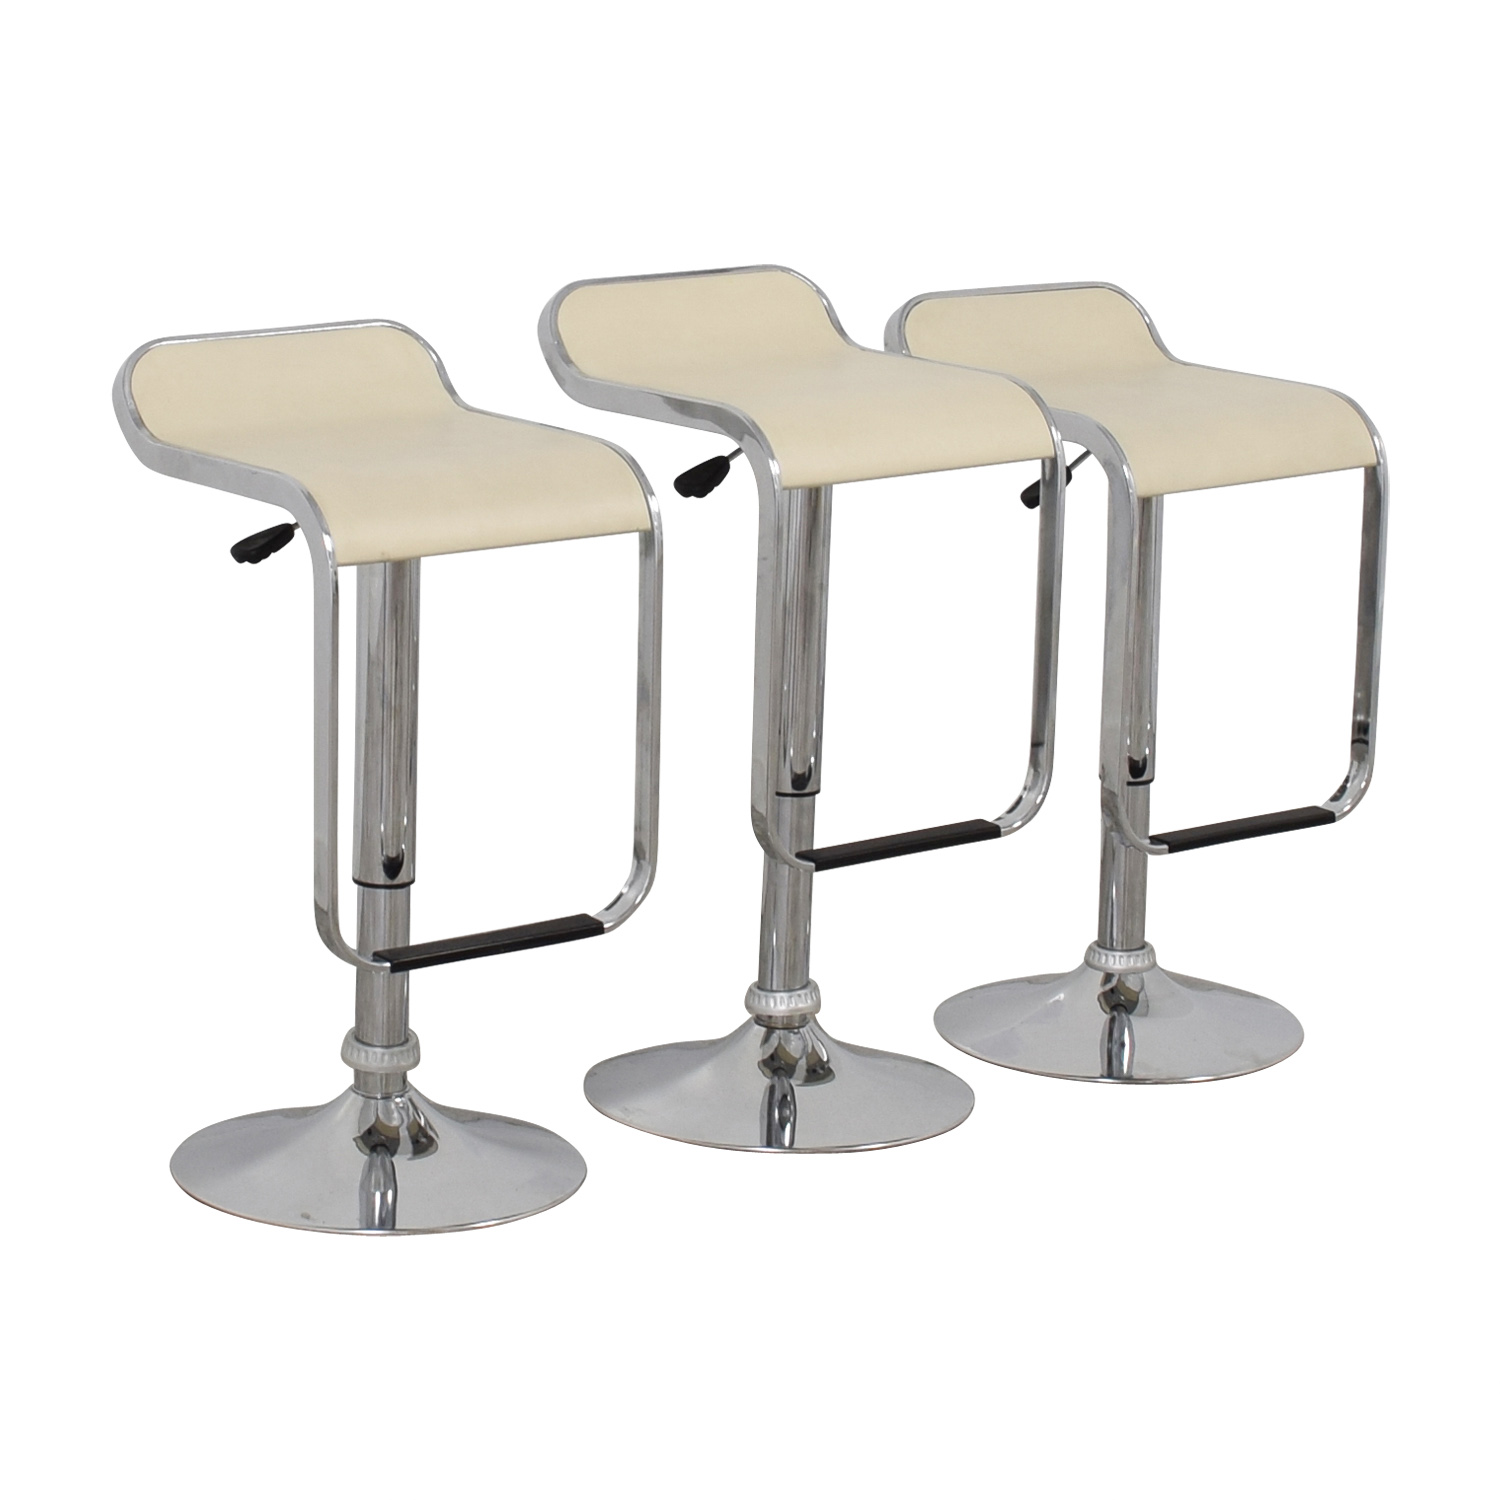 Pottery Barn Pottery Barn White and Chrome Stools coupon